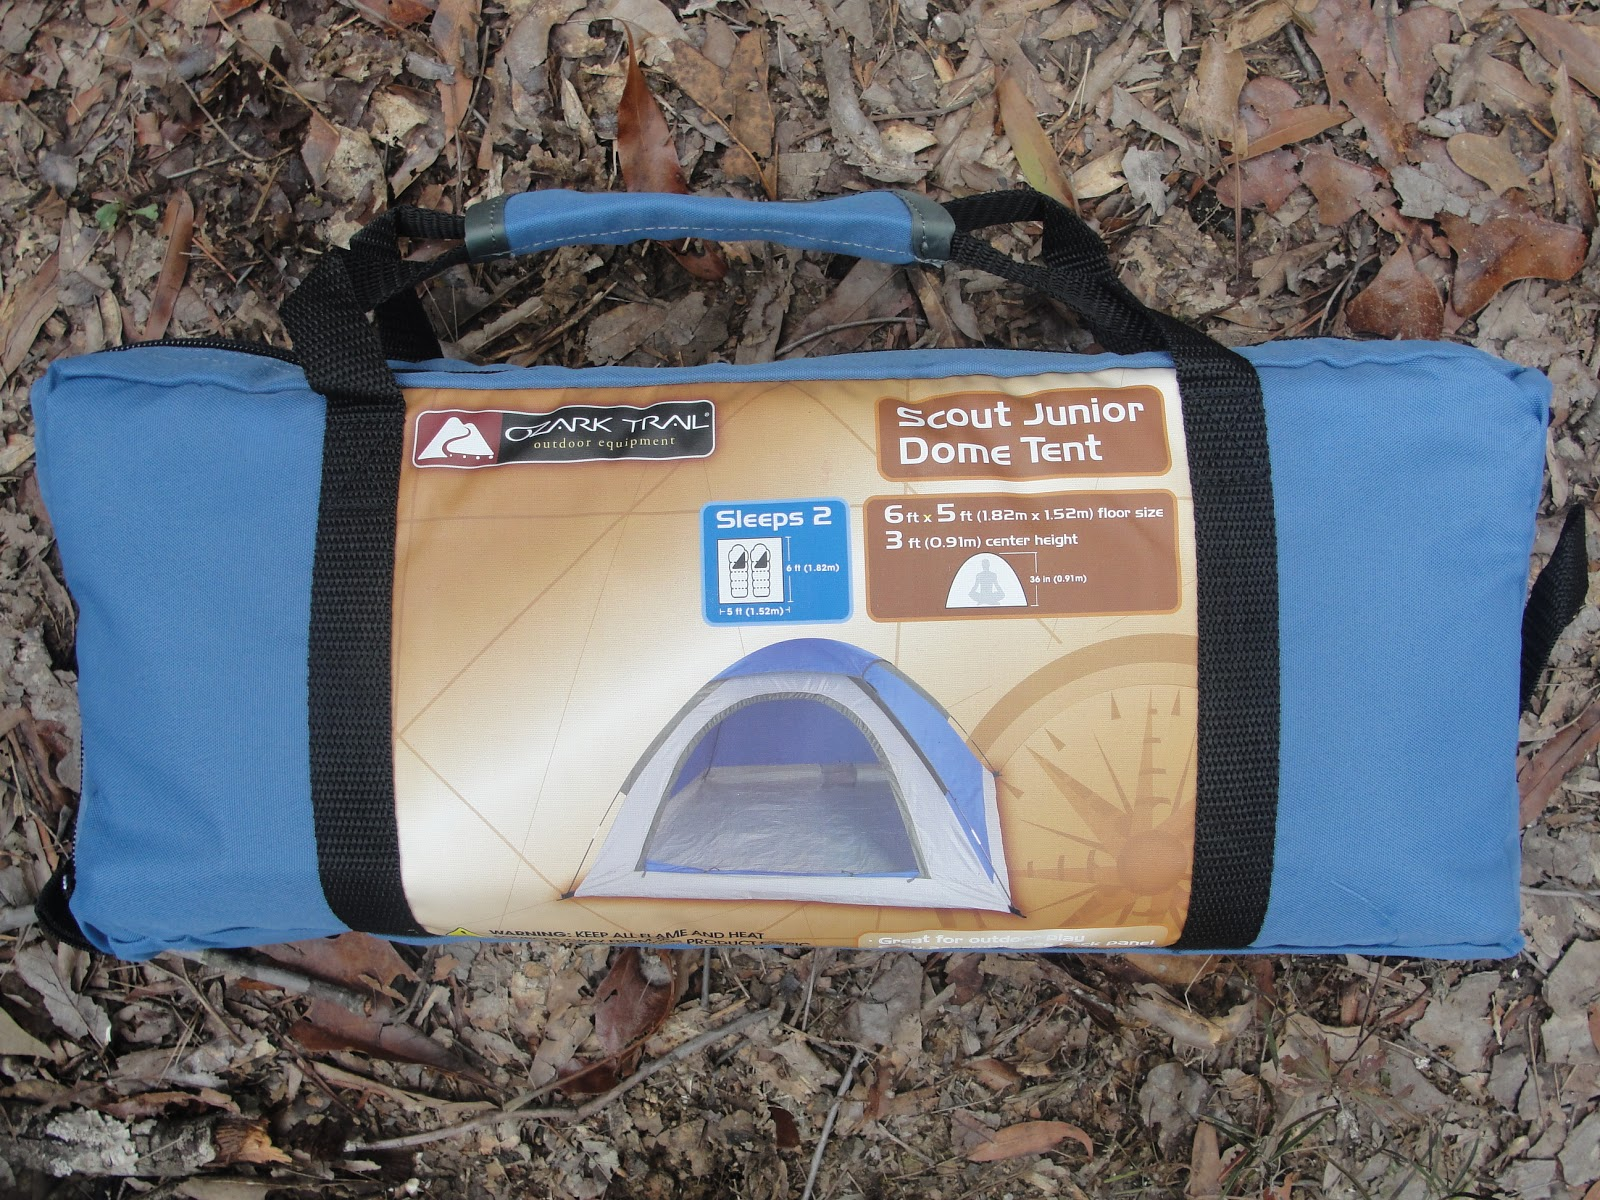 Planning And Foresight: Review - Ozark Trail Scout Junior